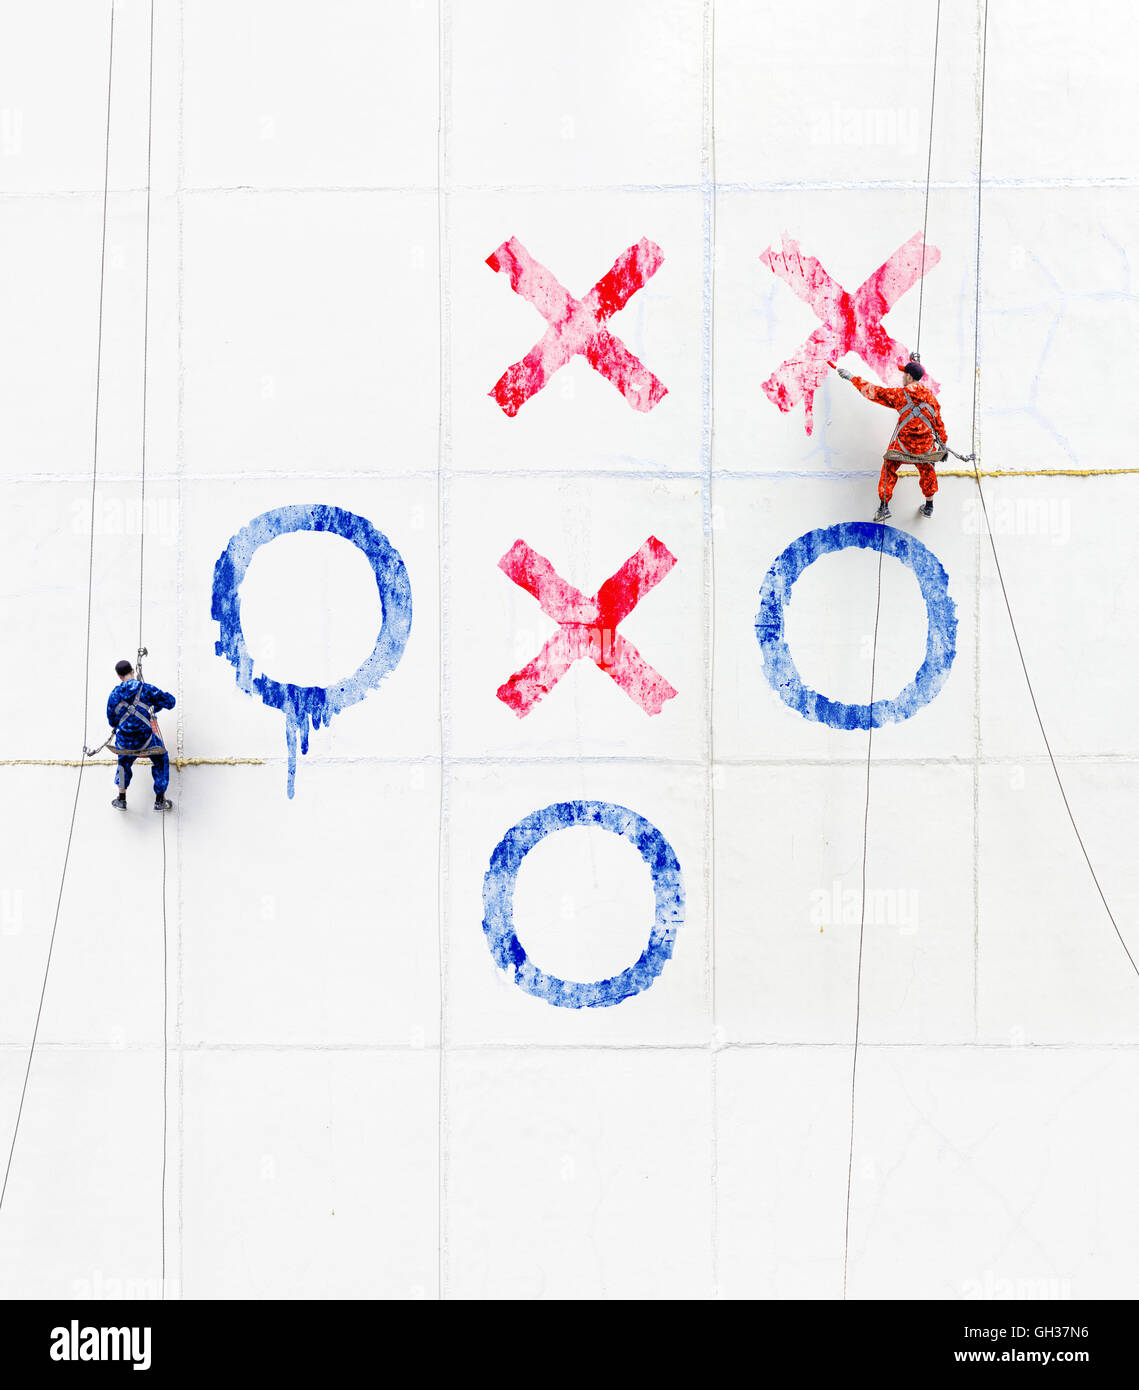 Maintenance workers  play tick-tack-toe  outside a wall - Stock Image